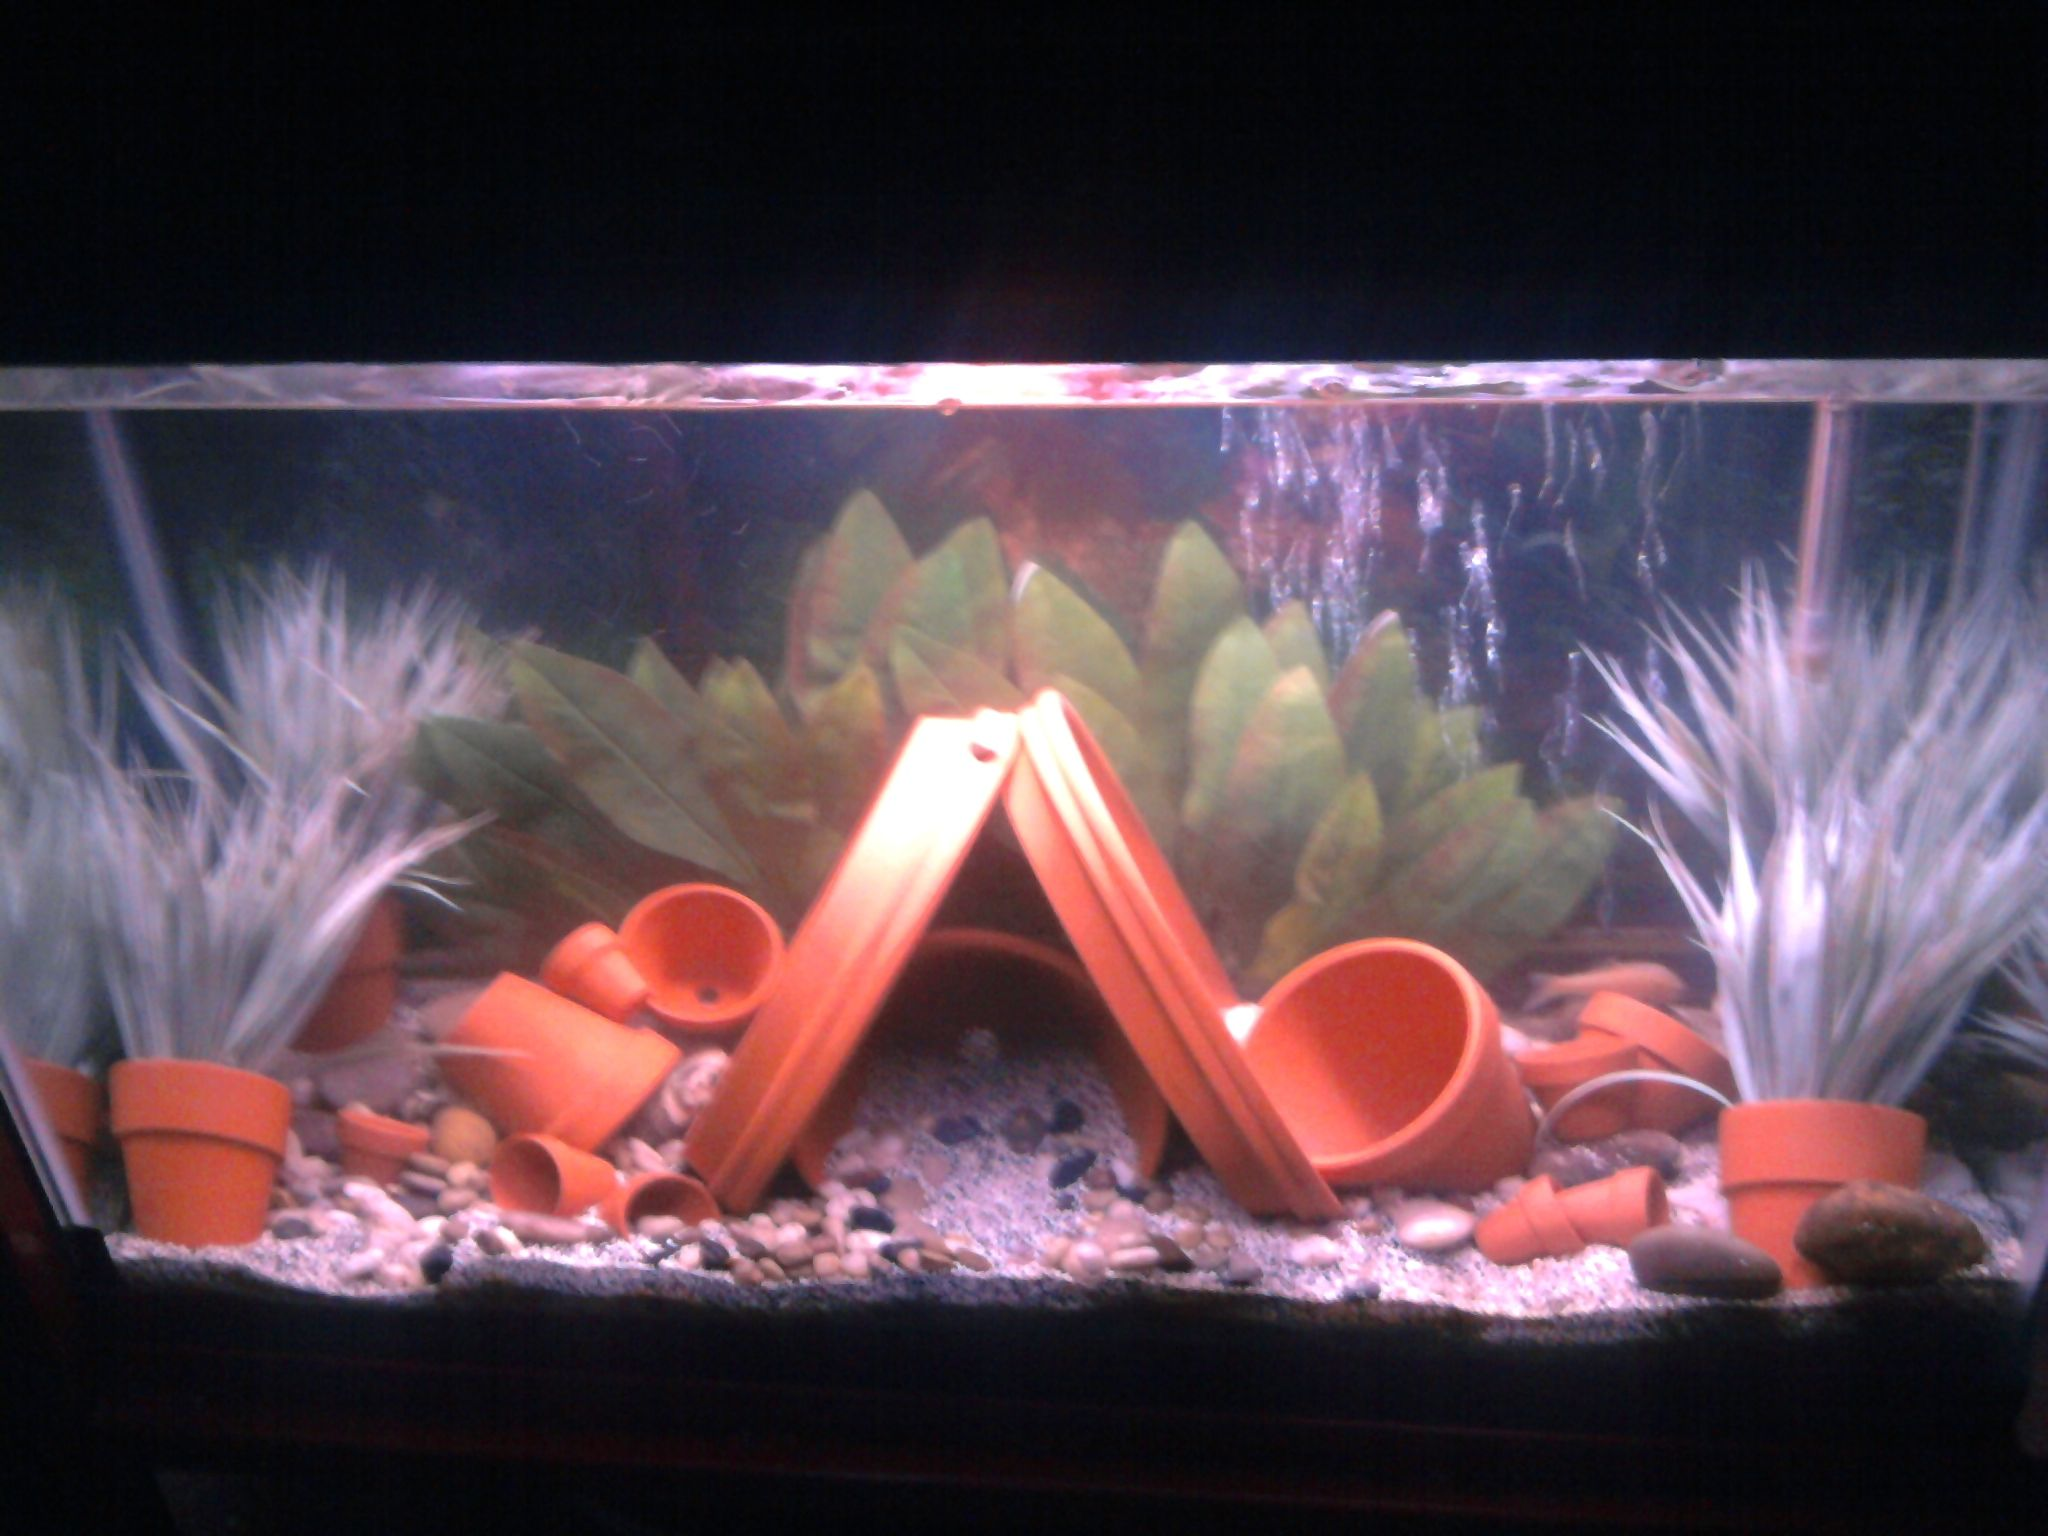 Fish tank electricity cost - My Attempt To Use Clay Pots In Aquarium And Not Look Boring Total